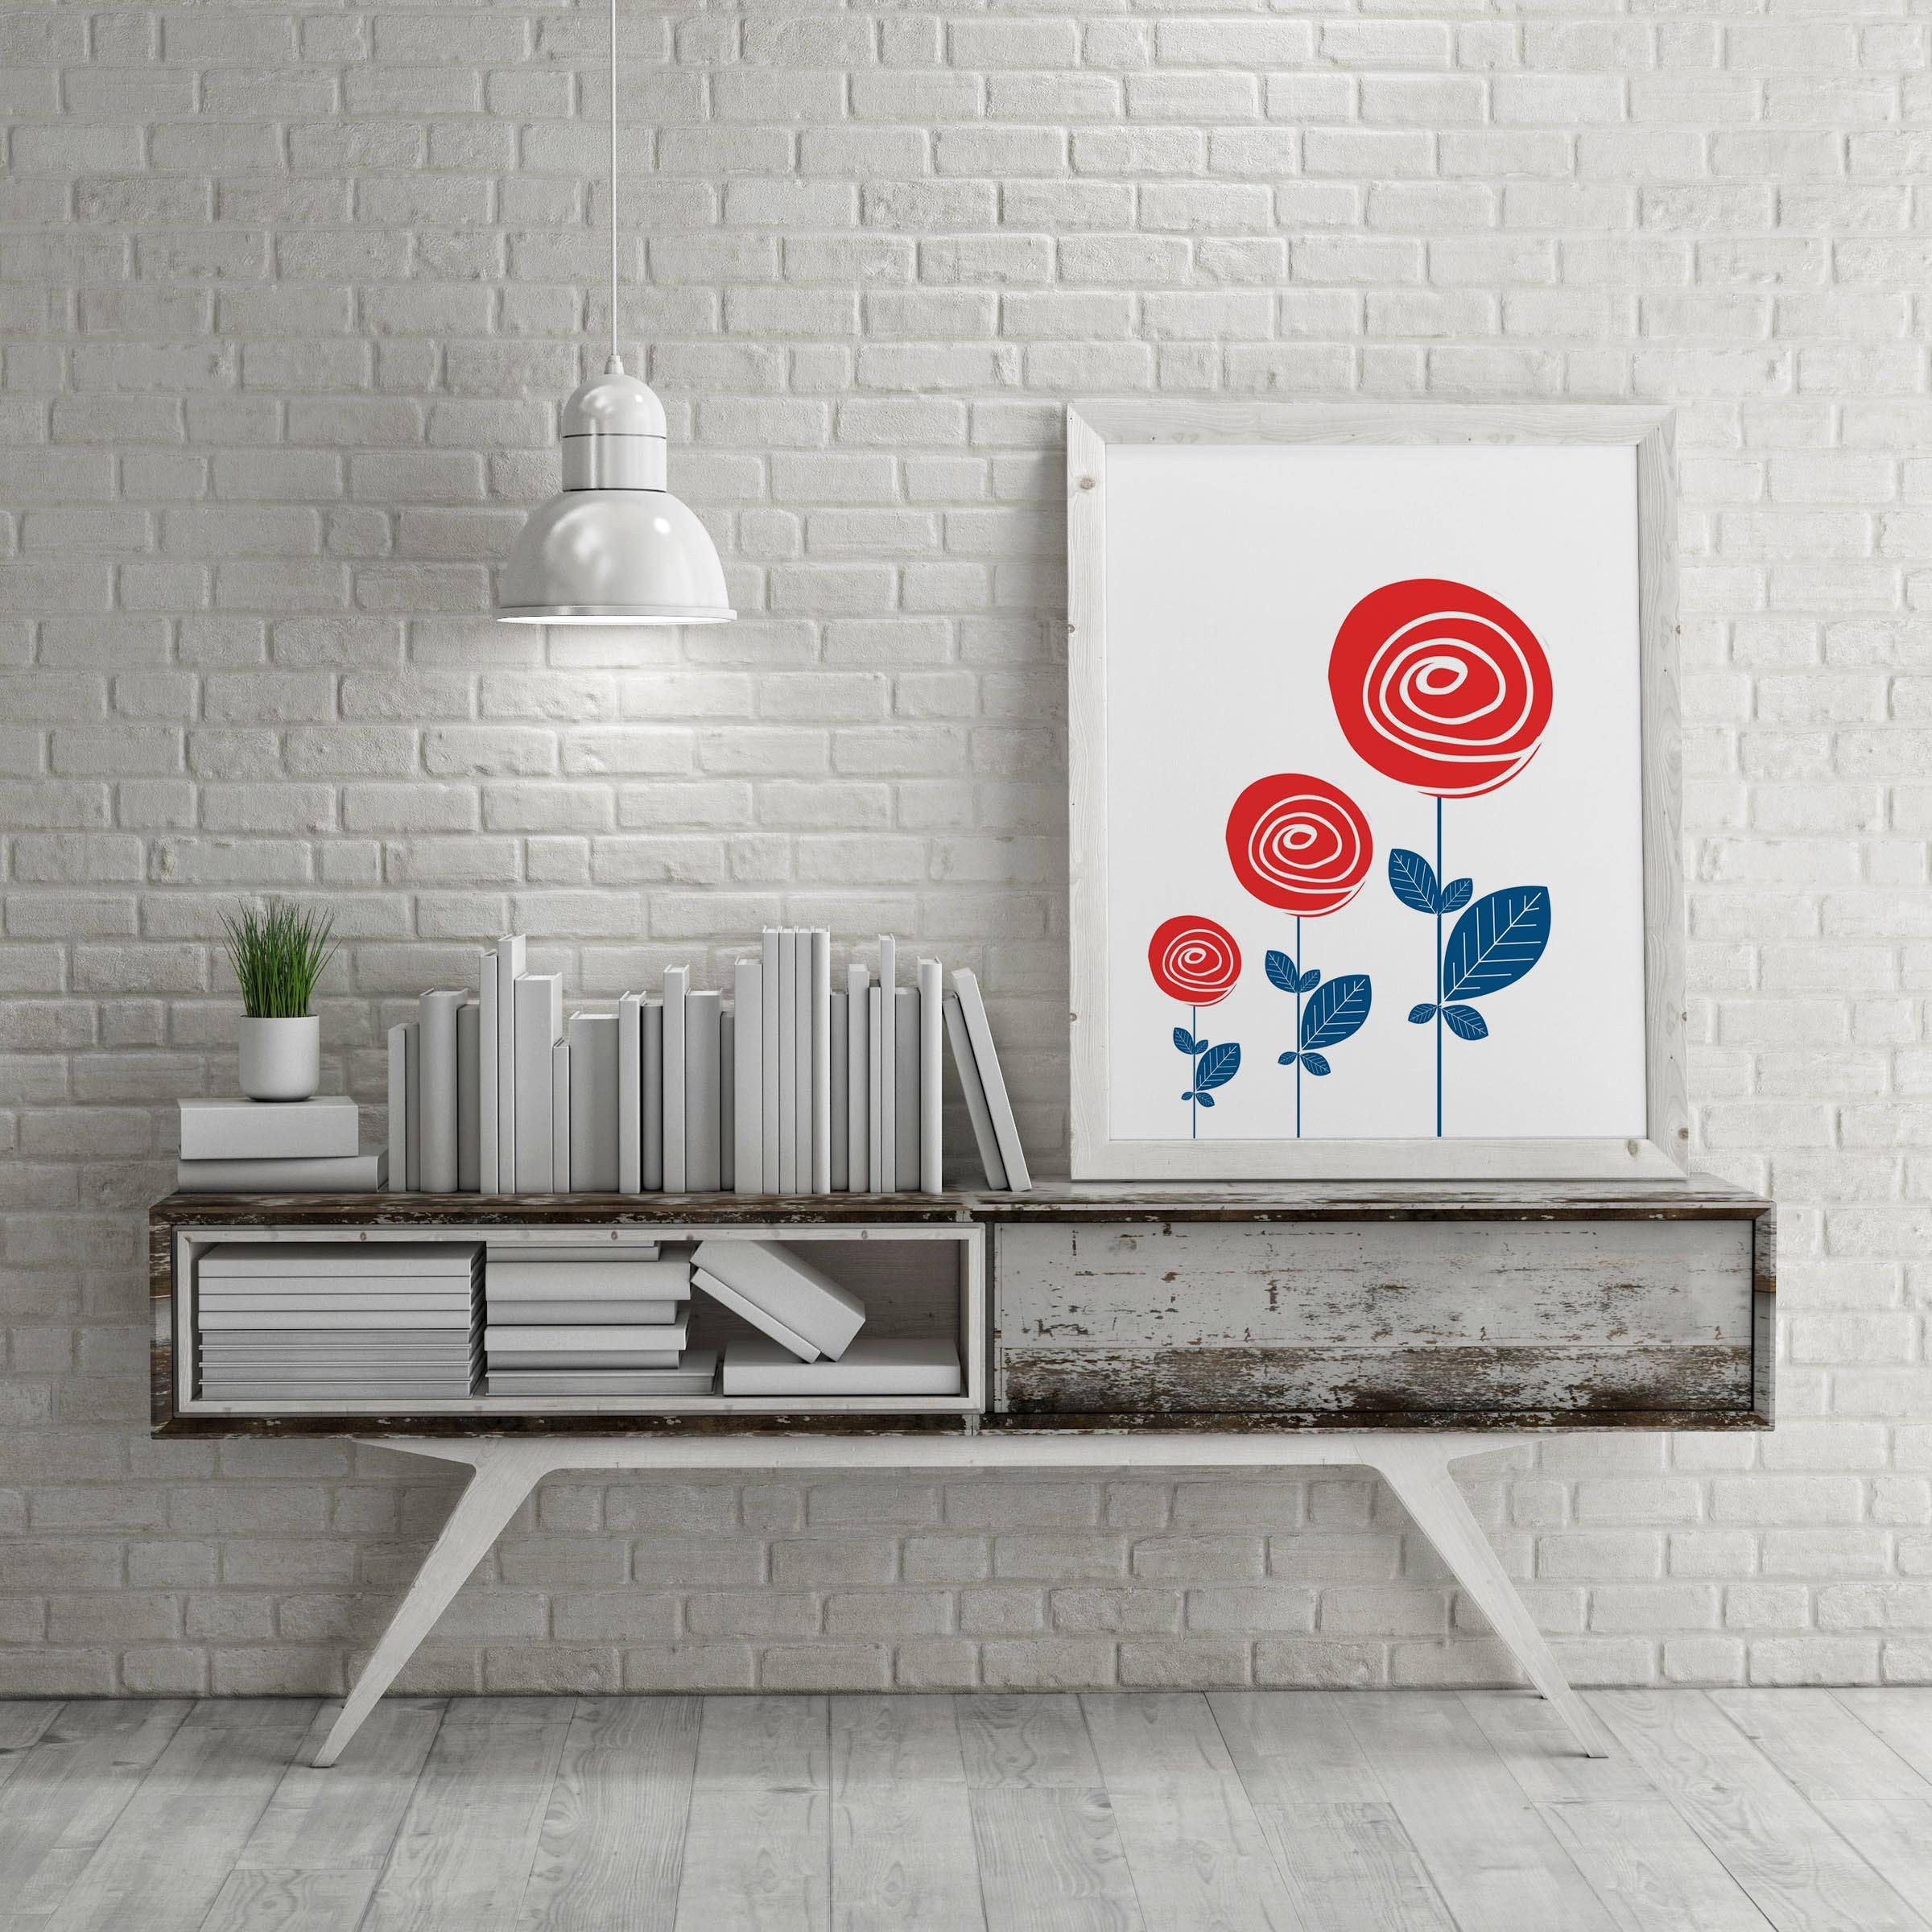 Patriotic Red White Blue 3 Flowers Printable Wall Art|Instant Download Memorial Day Decor| & Patriotic Red White Blue 3 Flowers Printable Wall Art|Instant ...